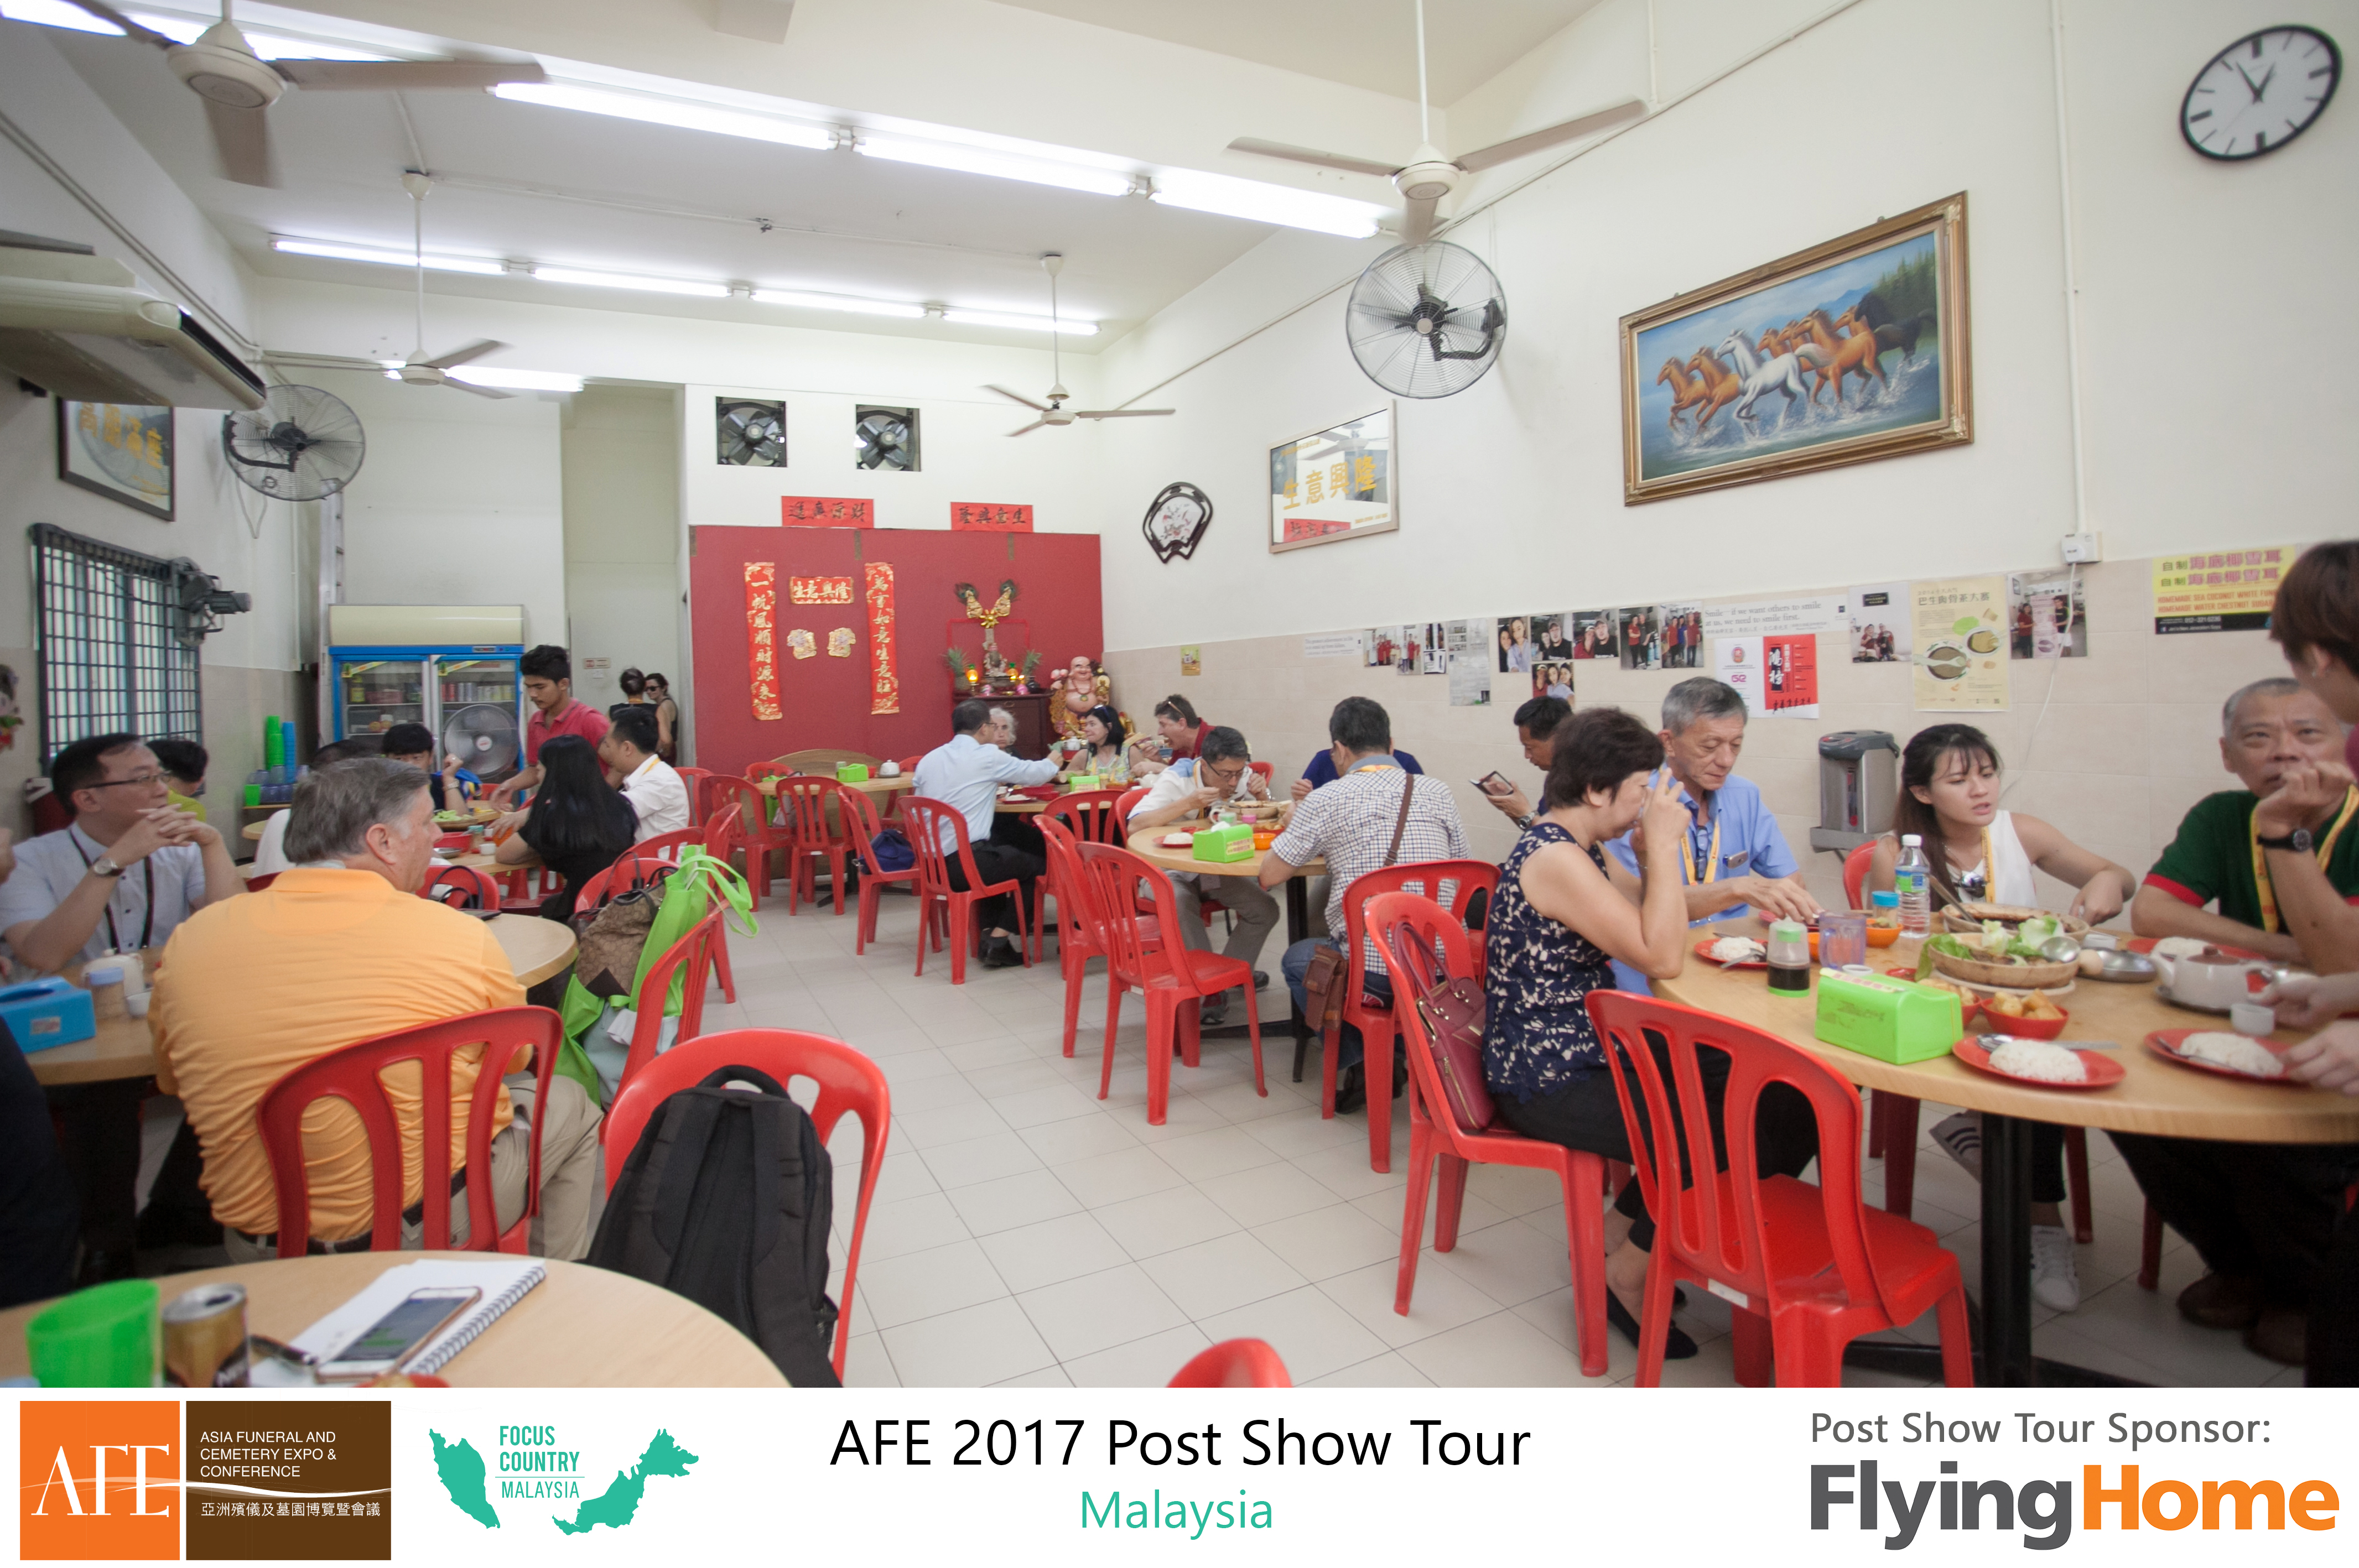 AFE Post Show Tour 2017 Day 4 - 25